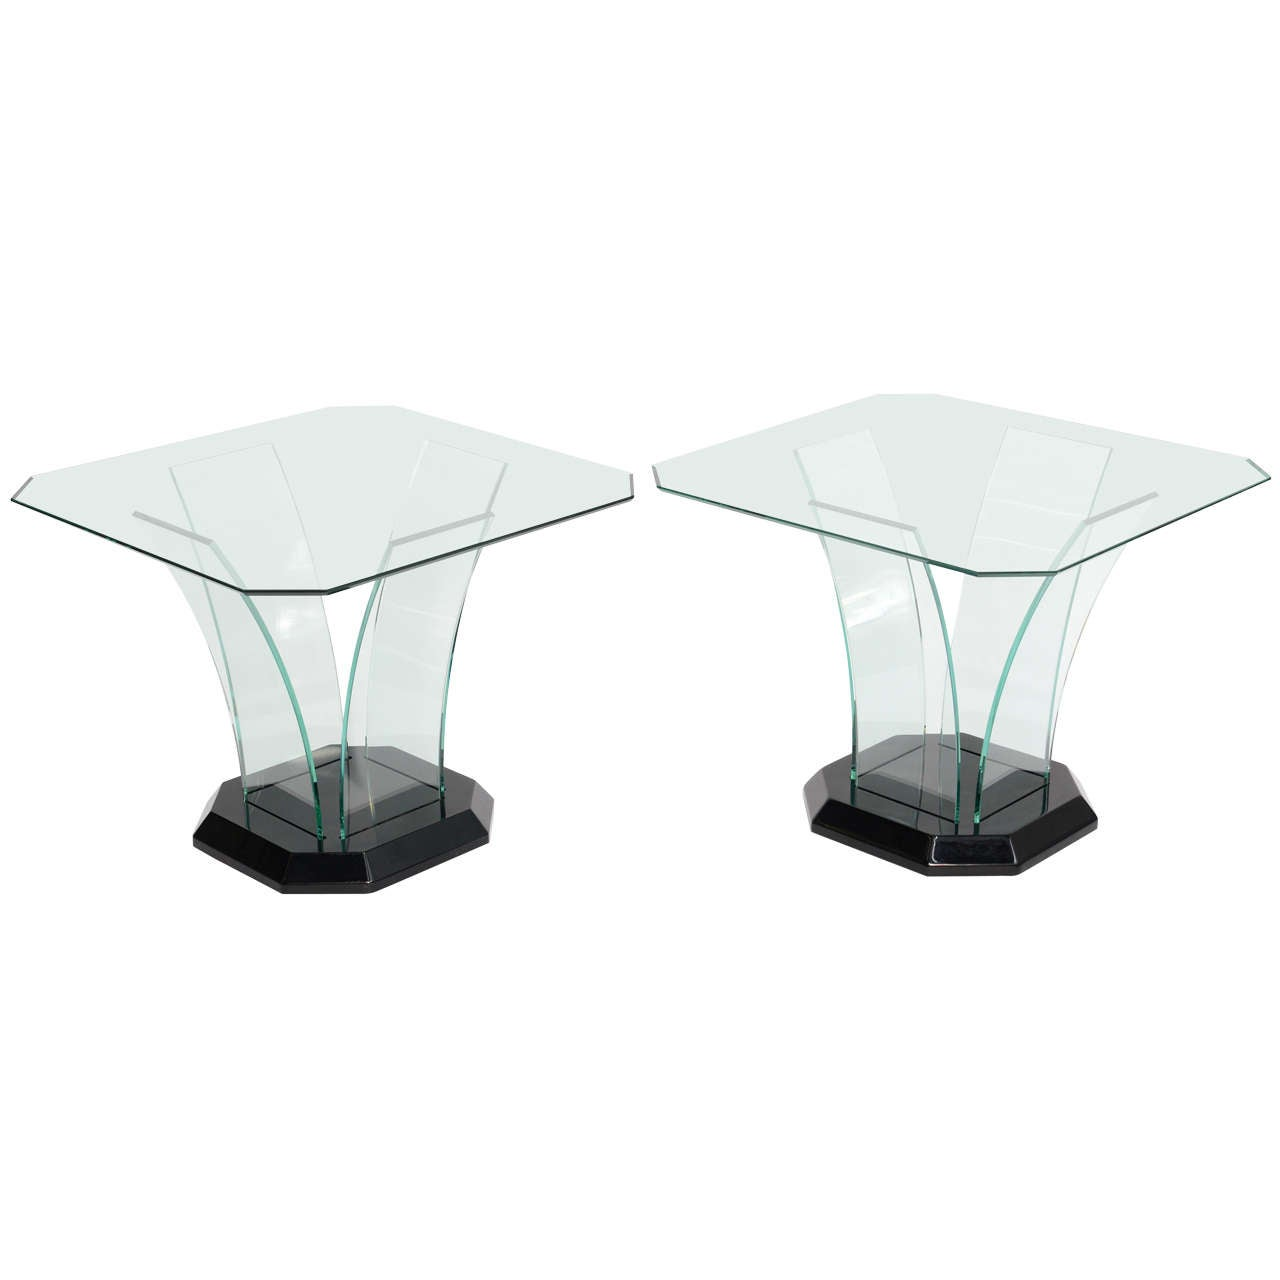 pair ben mildwoff art deco bent glass side tables at stdibs - pair ben mildwoff art deco bent glass side tables